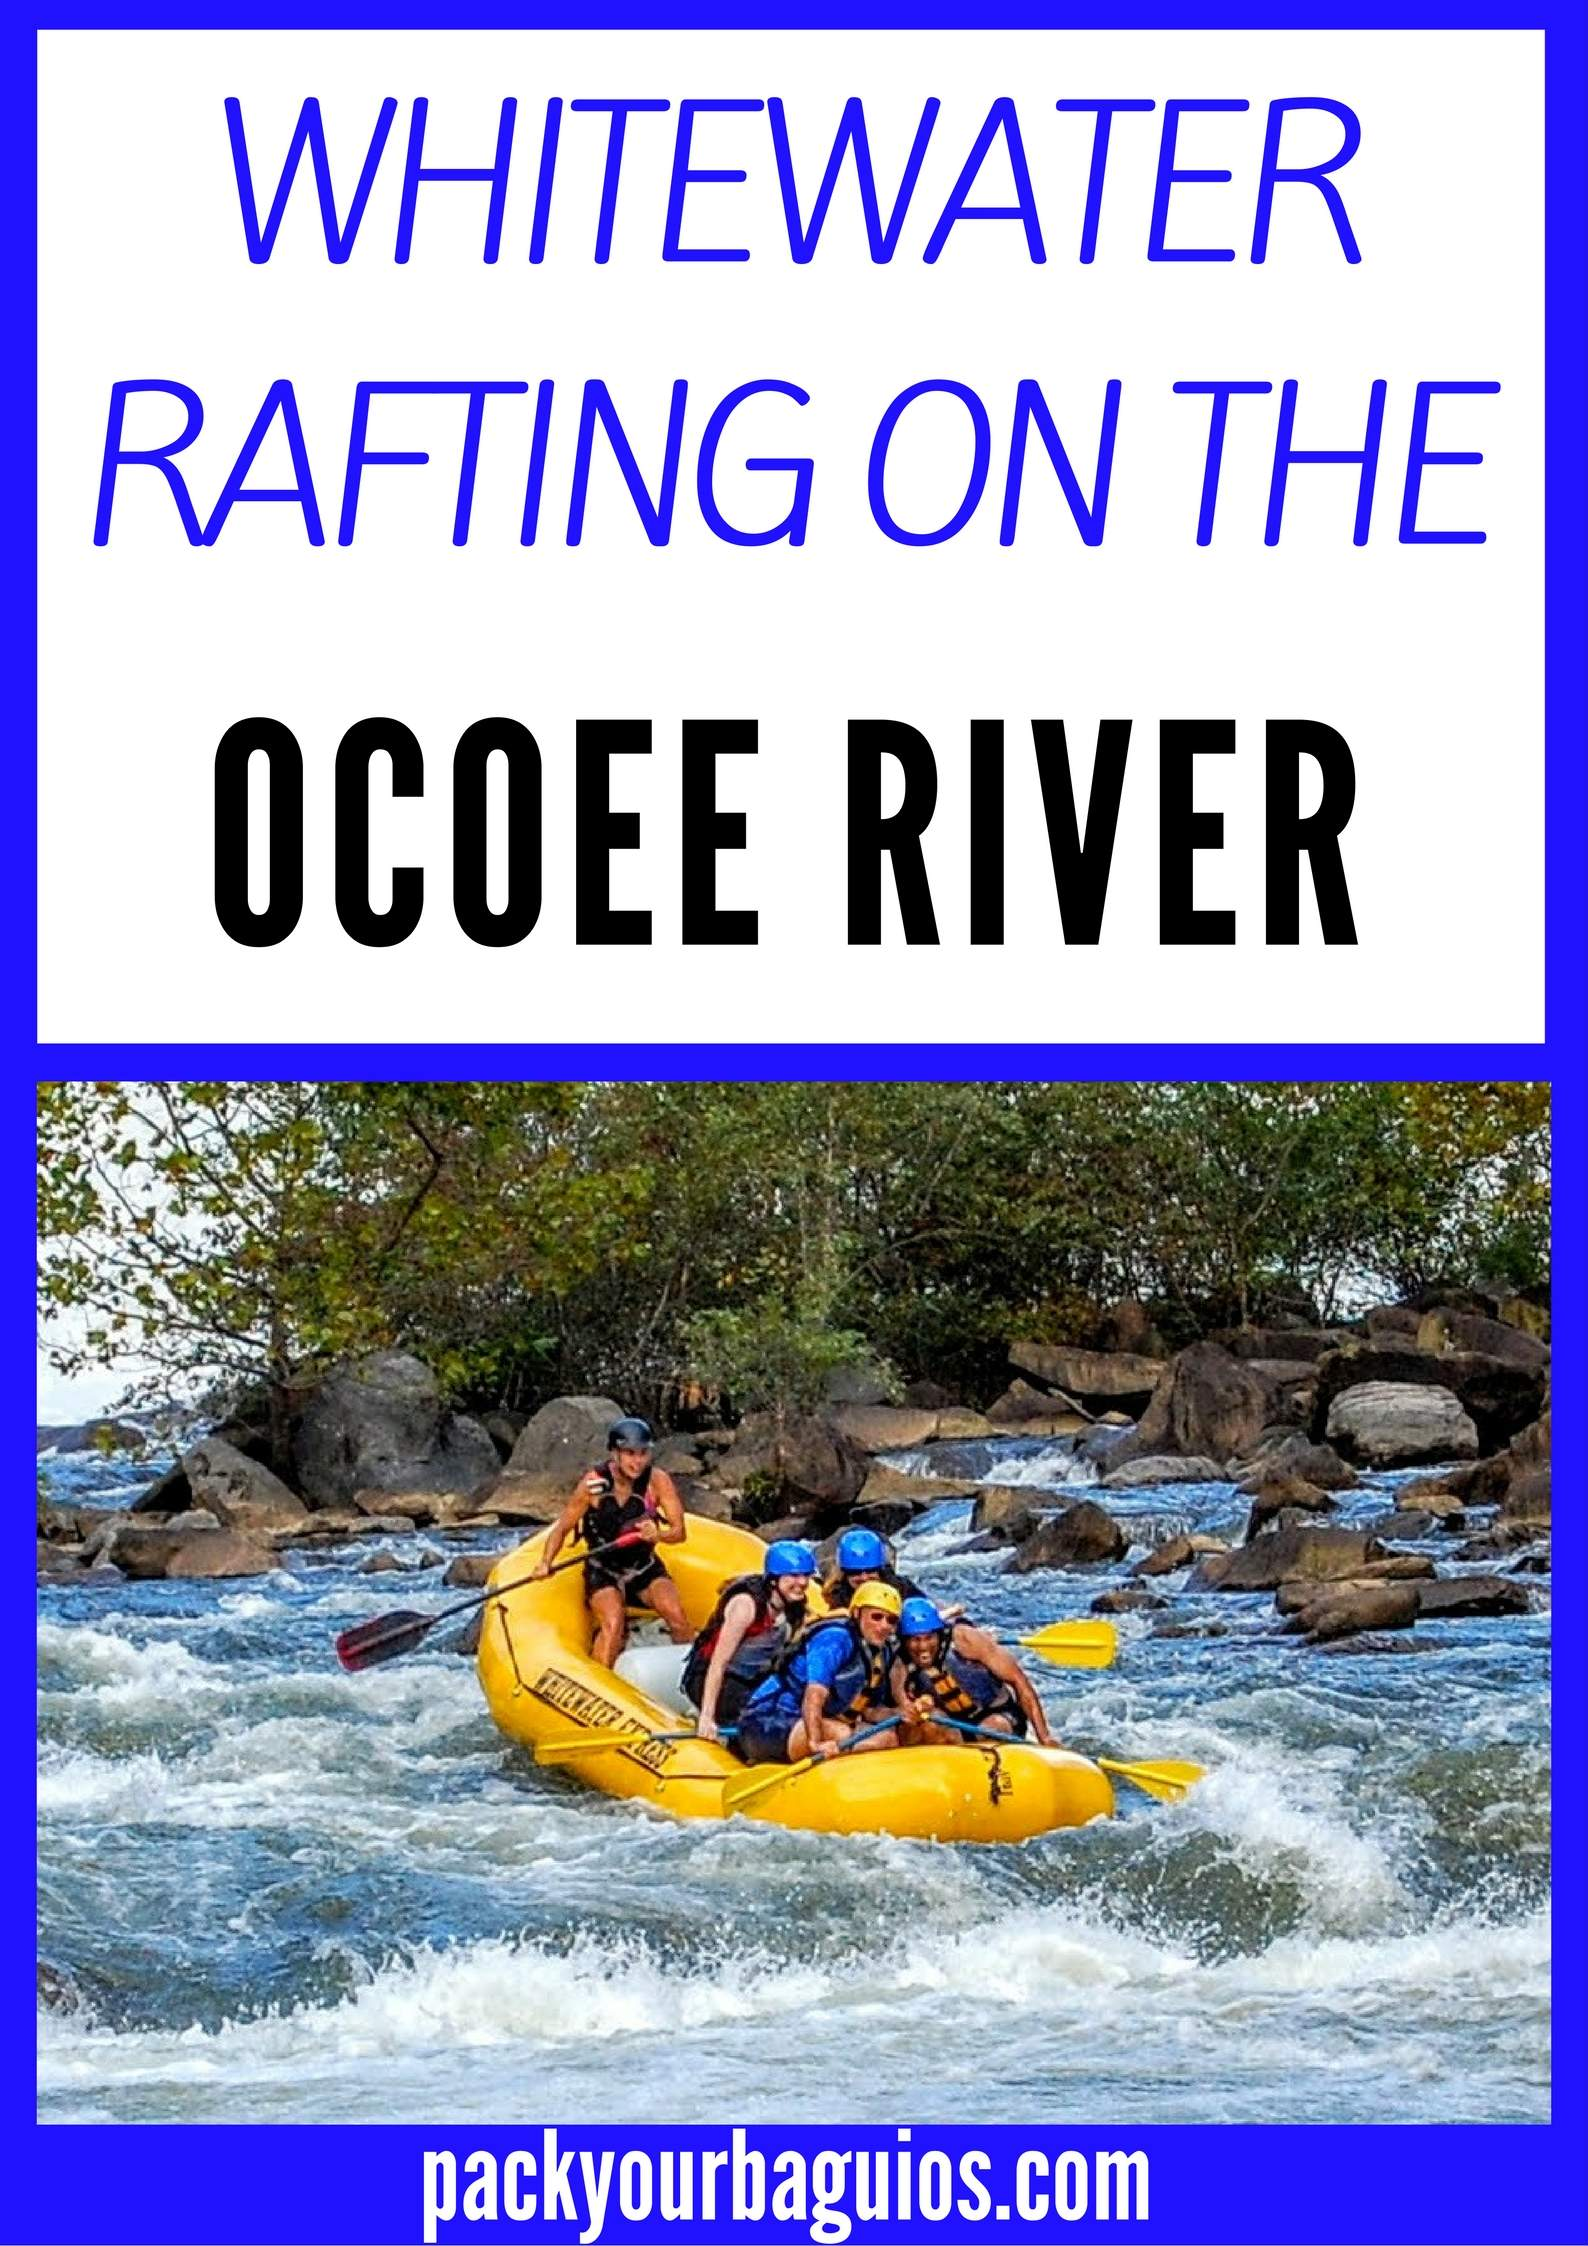 Whitewater Rafting On The Ocoee River Pack Your Baguios